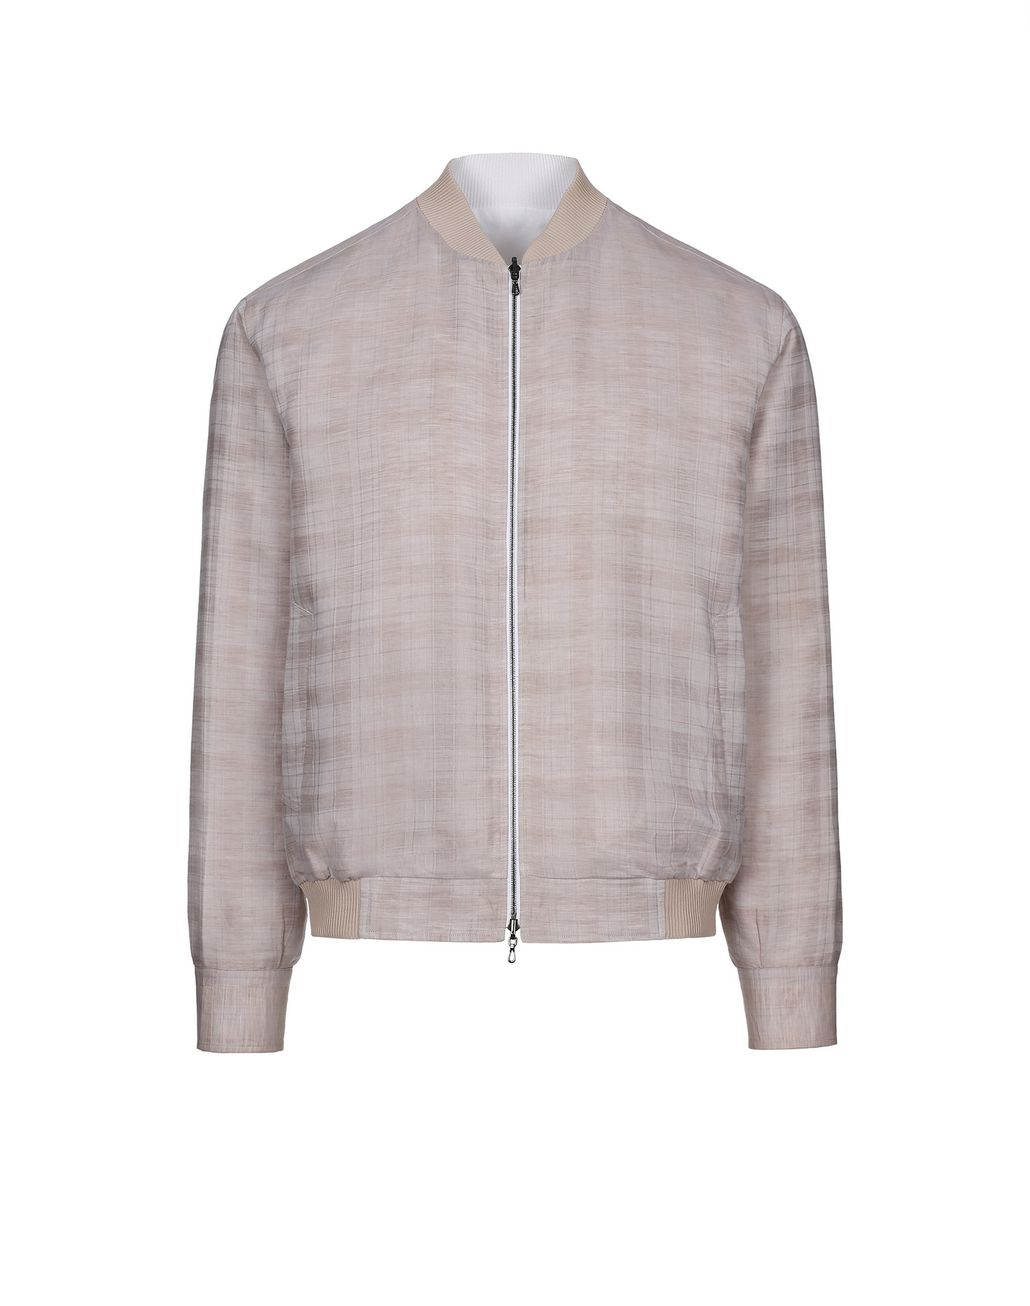 BRIONI Beige and White Reversible Blouson Shirt   Outerwear [*** pickupInStoreShippingNotGuaranteed_info ***] f